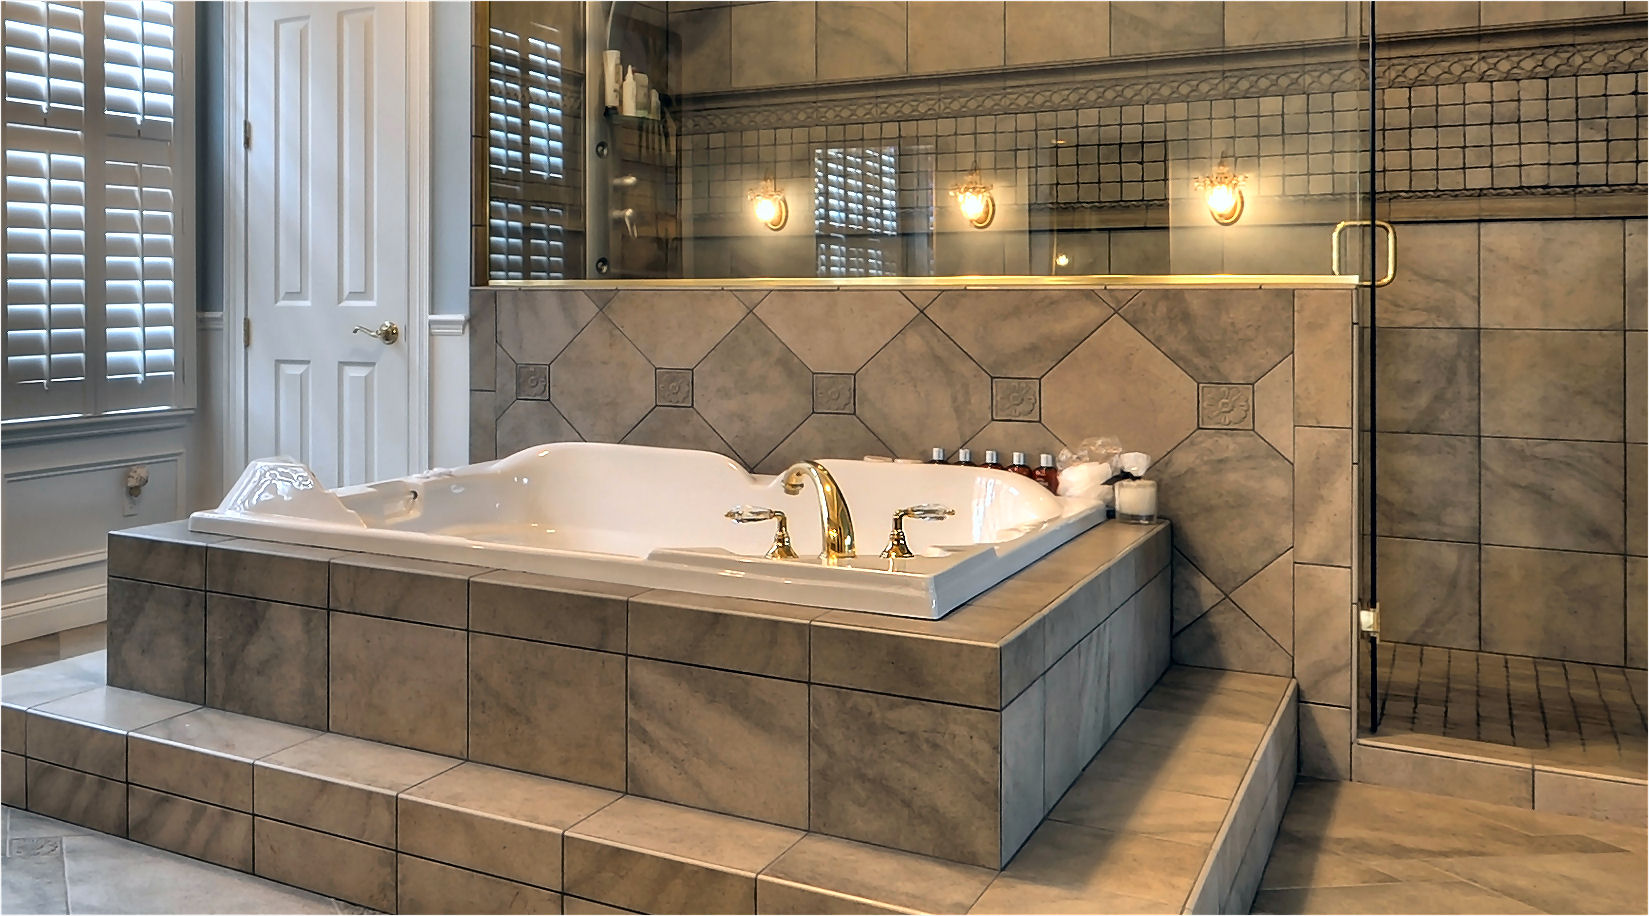 Awesome Bath Tub With Granite Tile Stunning Art Harding Construction ...